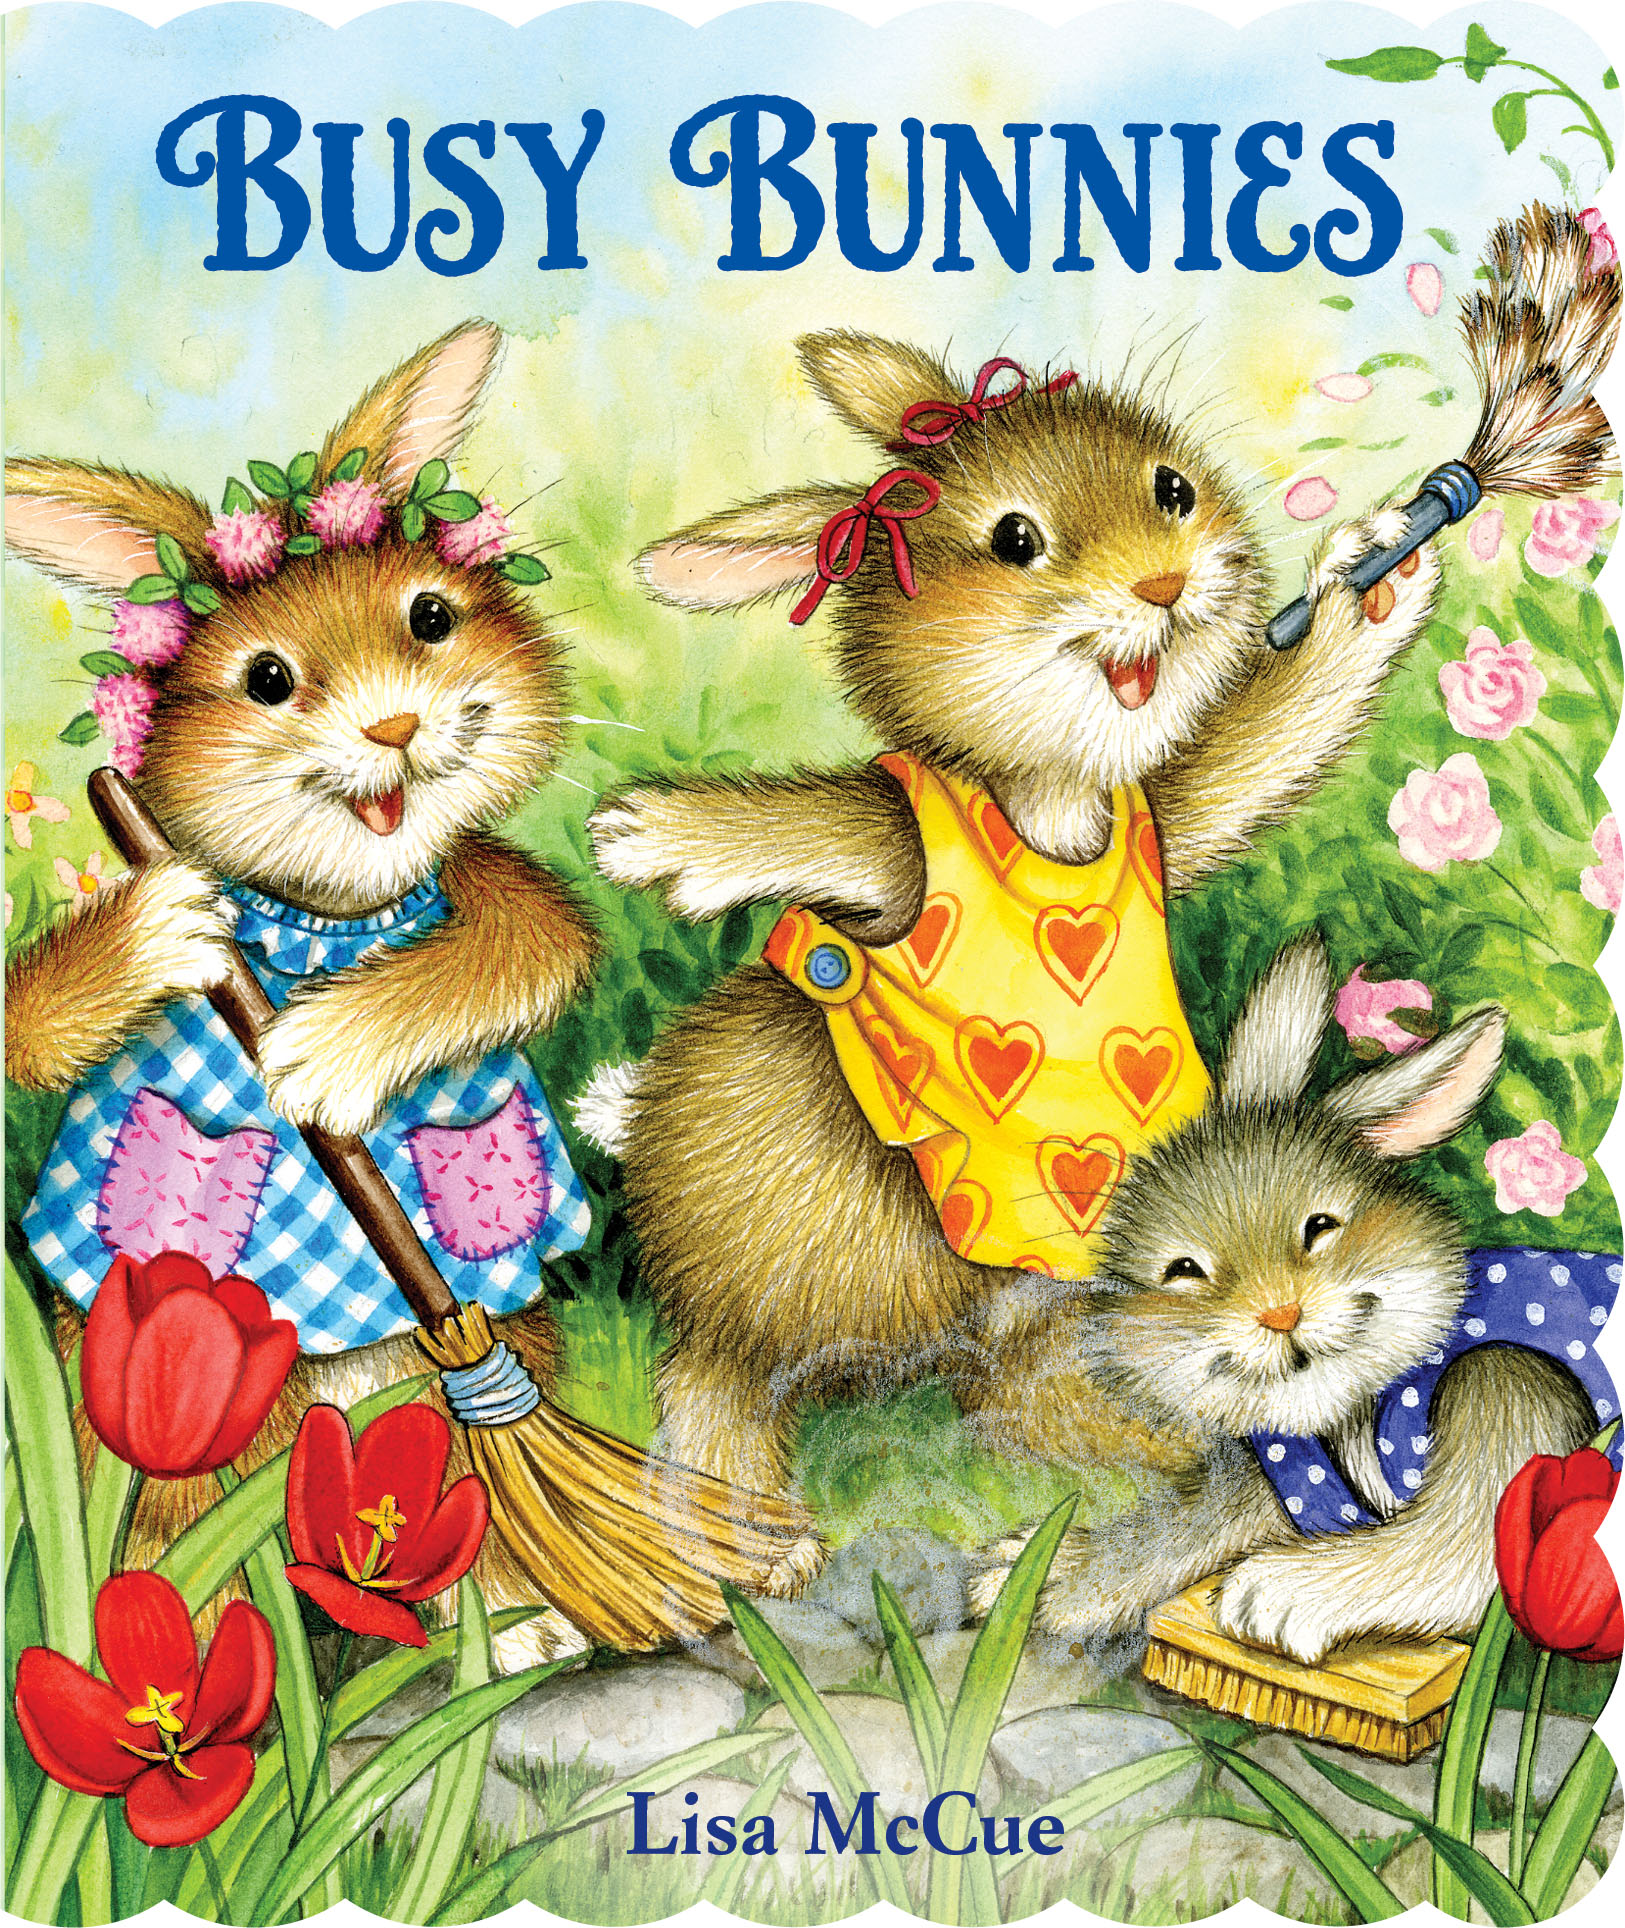 Busy bunnies 9780794430399 hr